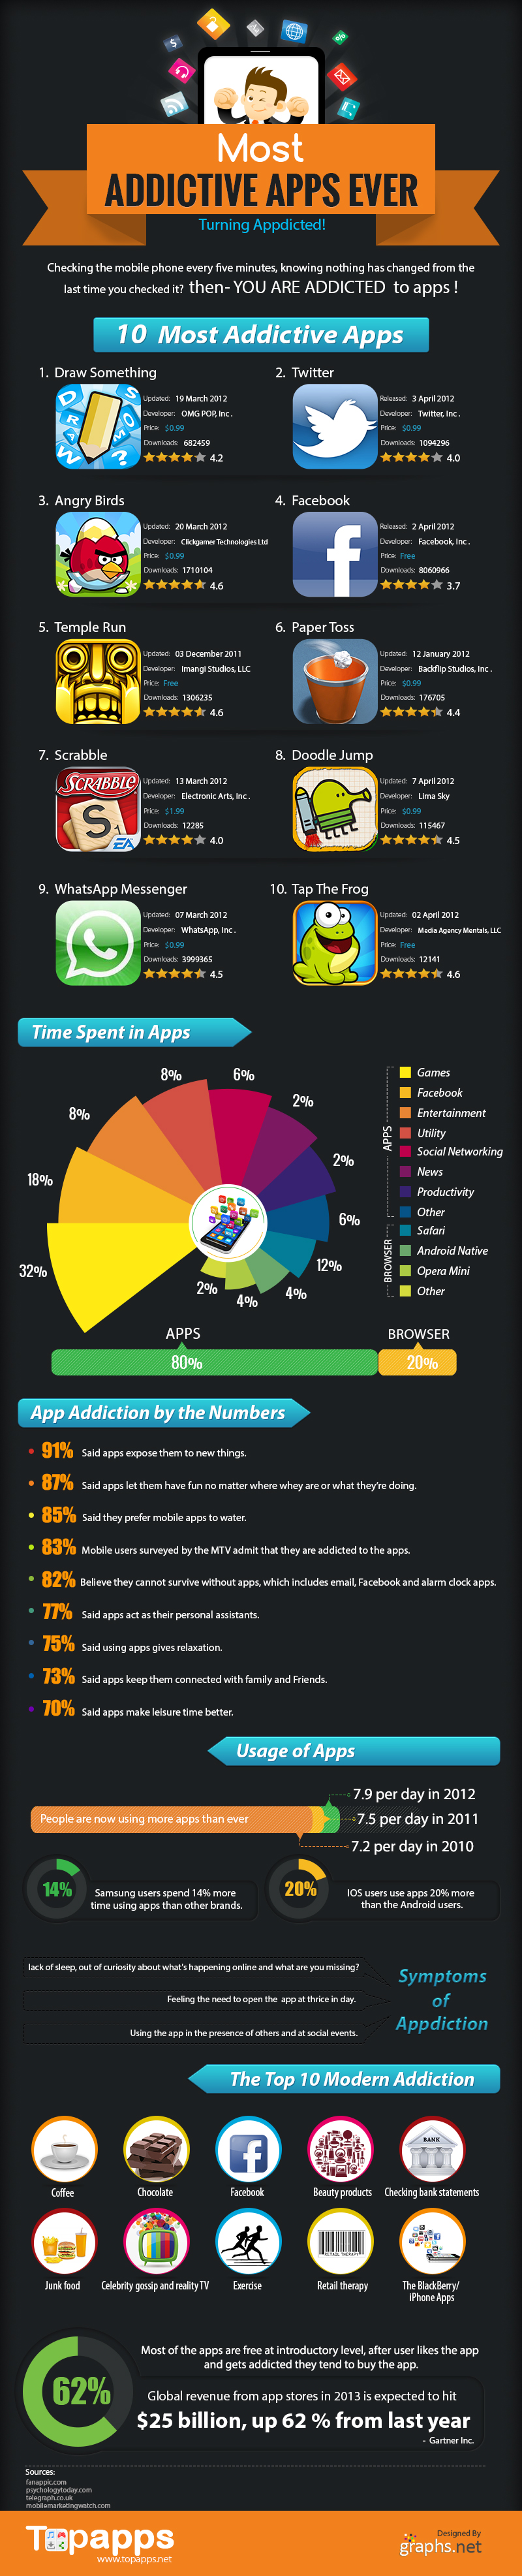 10 most addicting apps ever